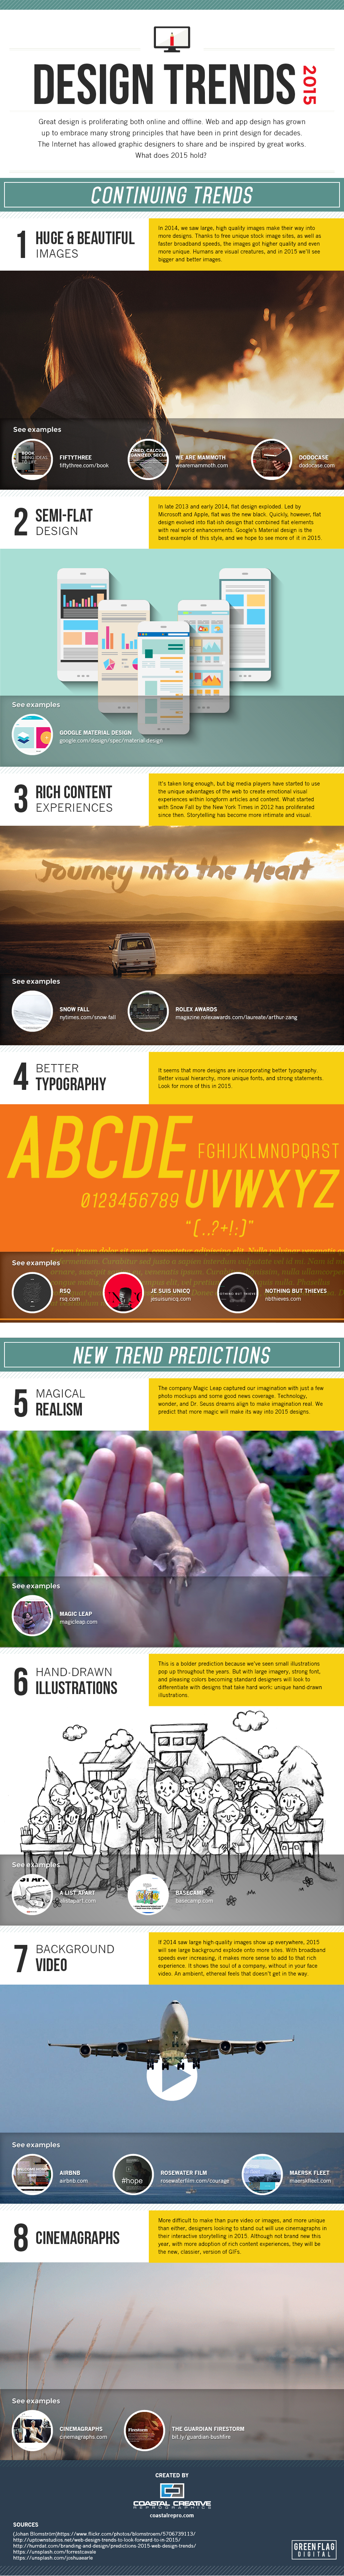 Best Design Trends in 2015 Infographic : eAskme